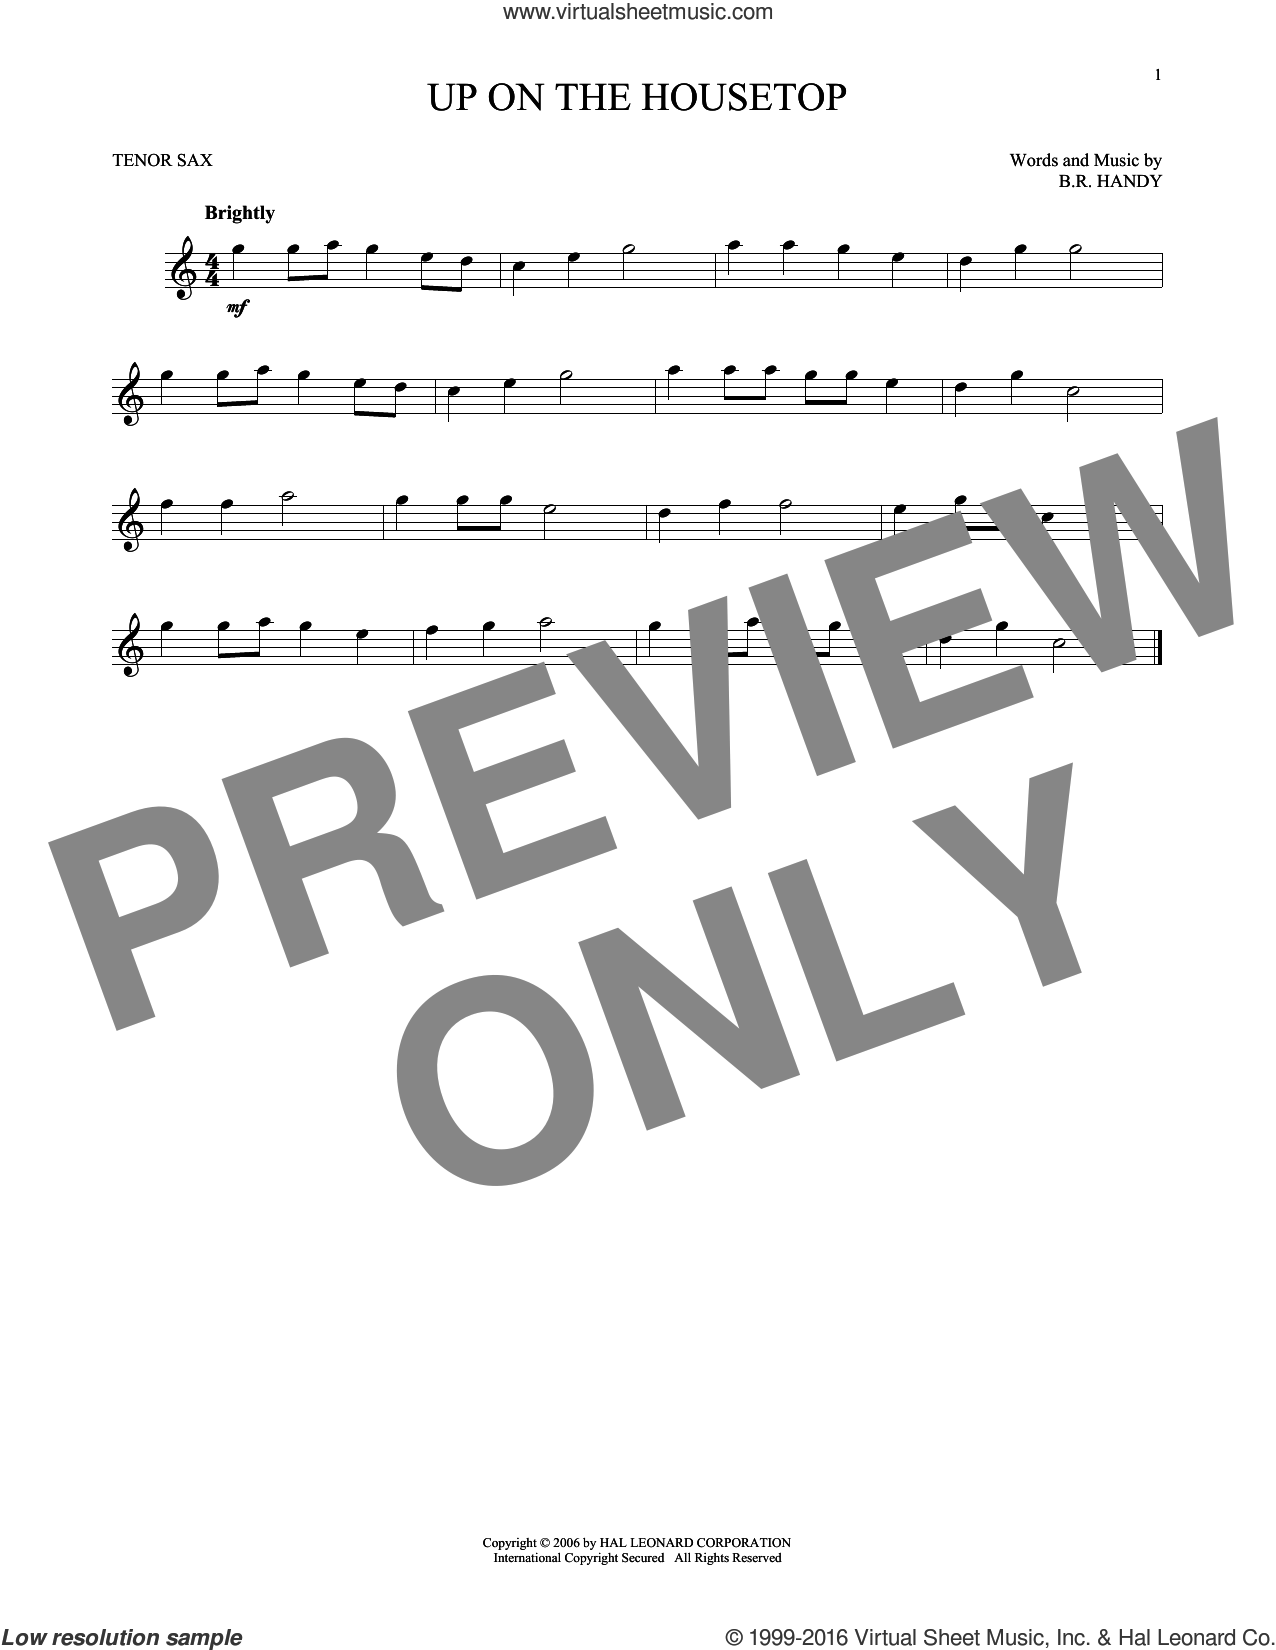 Up On The Housetop sheet music for tenor saxophone solo by Benjamin Hanby, intermediate